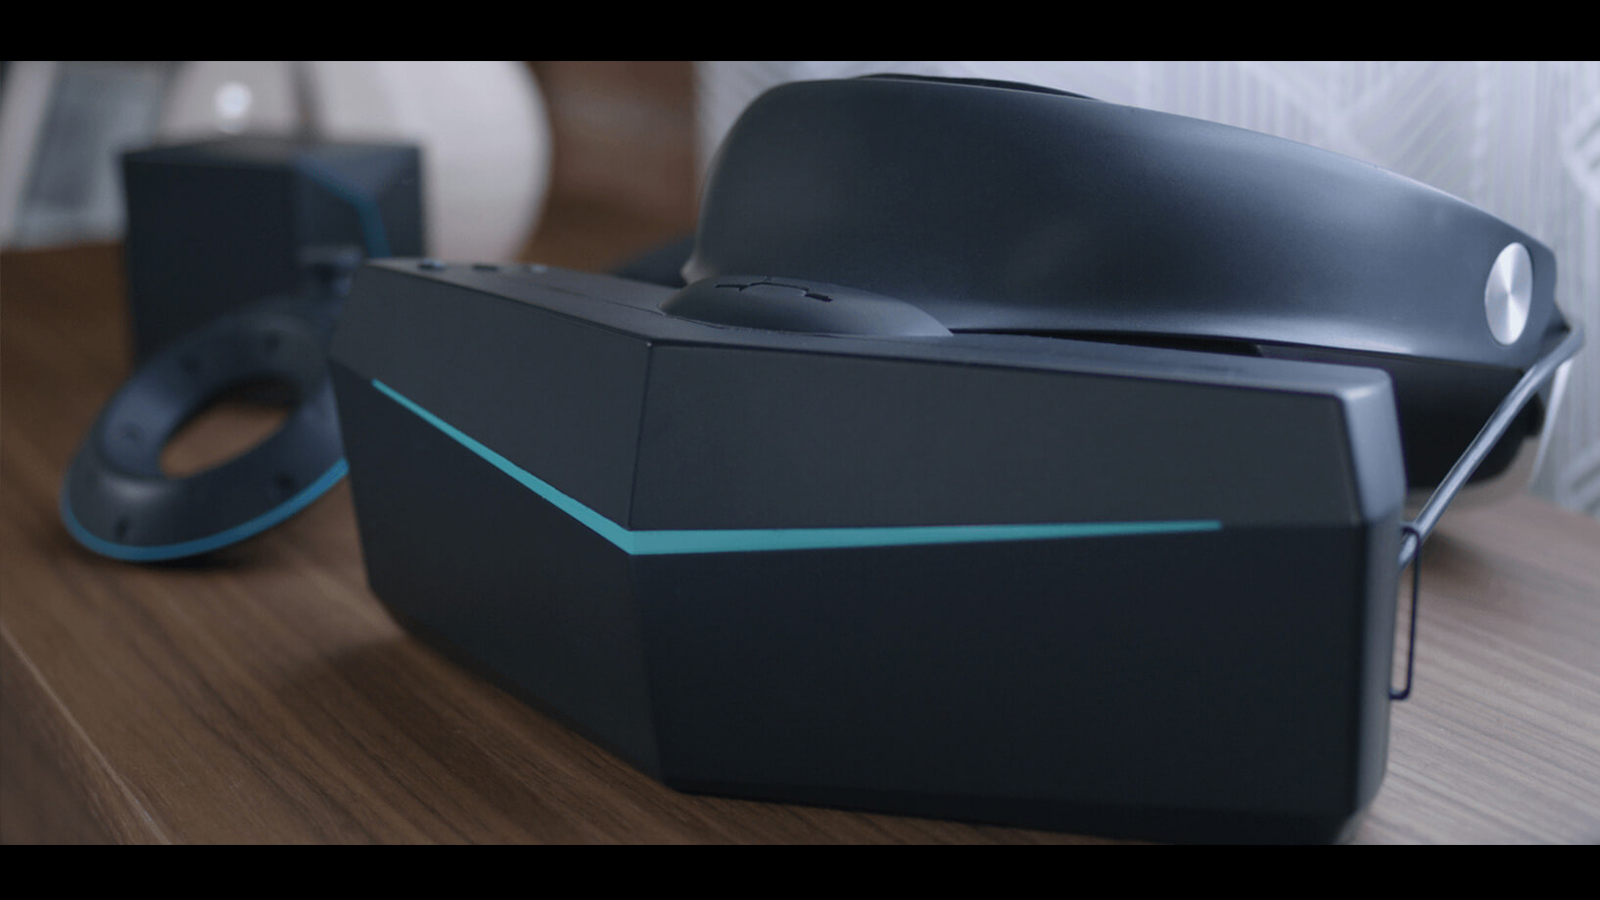 Here's What The Founder Of Pimax Had To Say About Their Recent Development Of The Headset